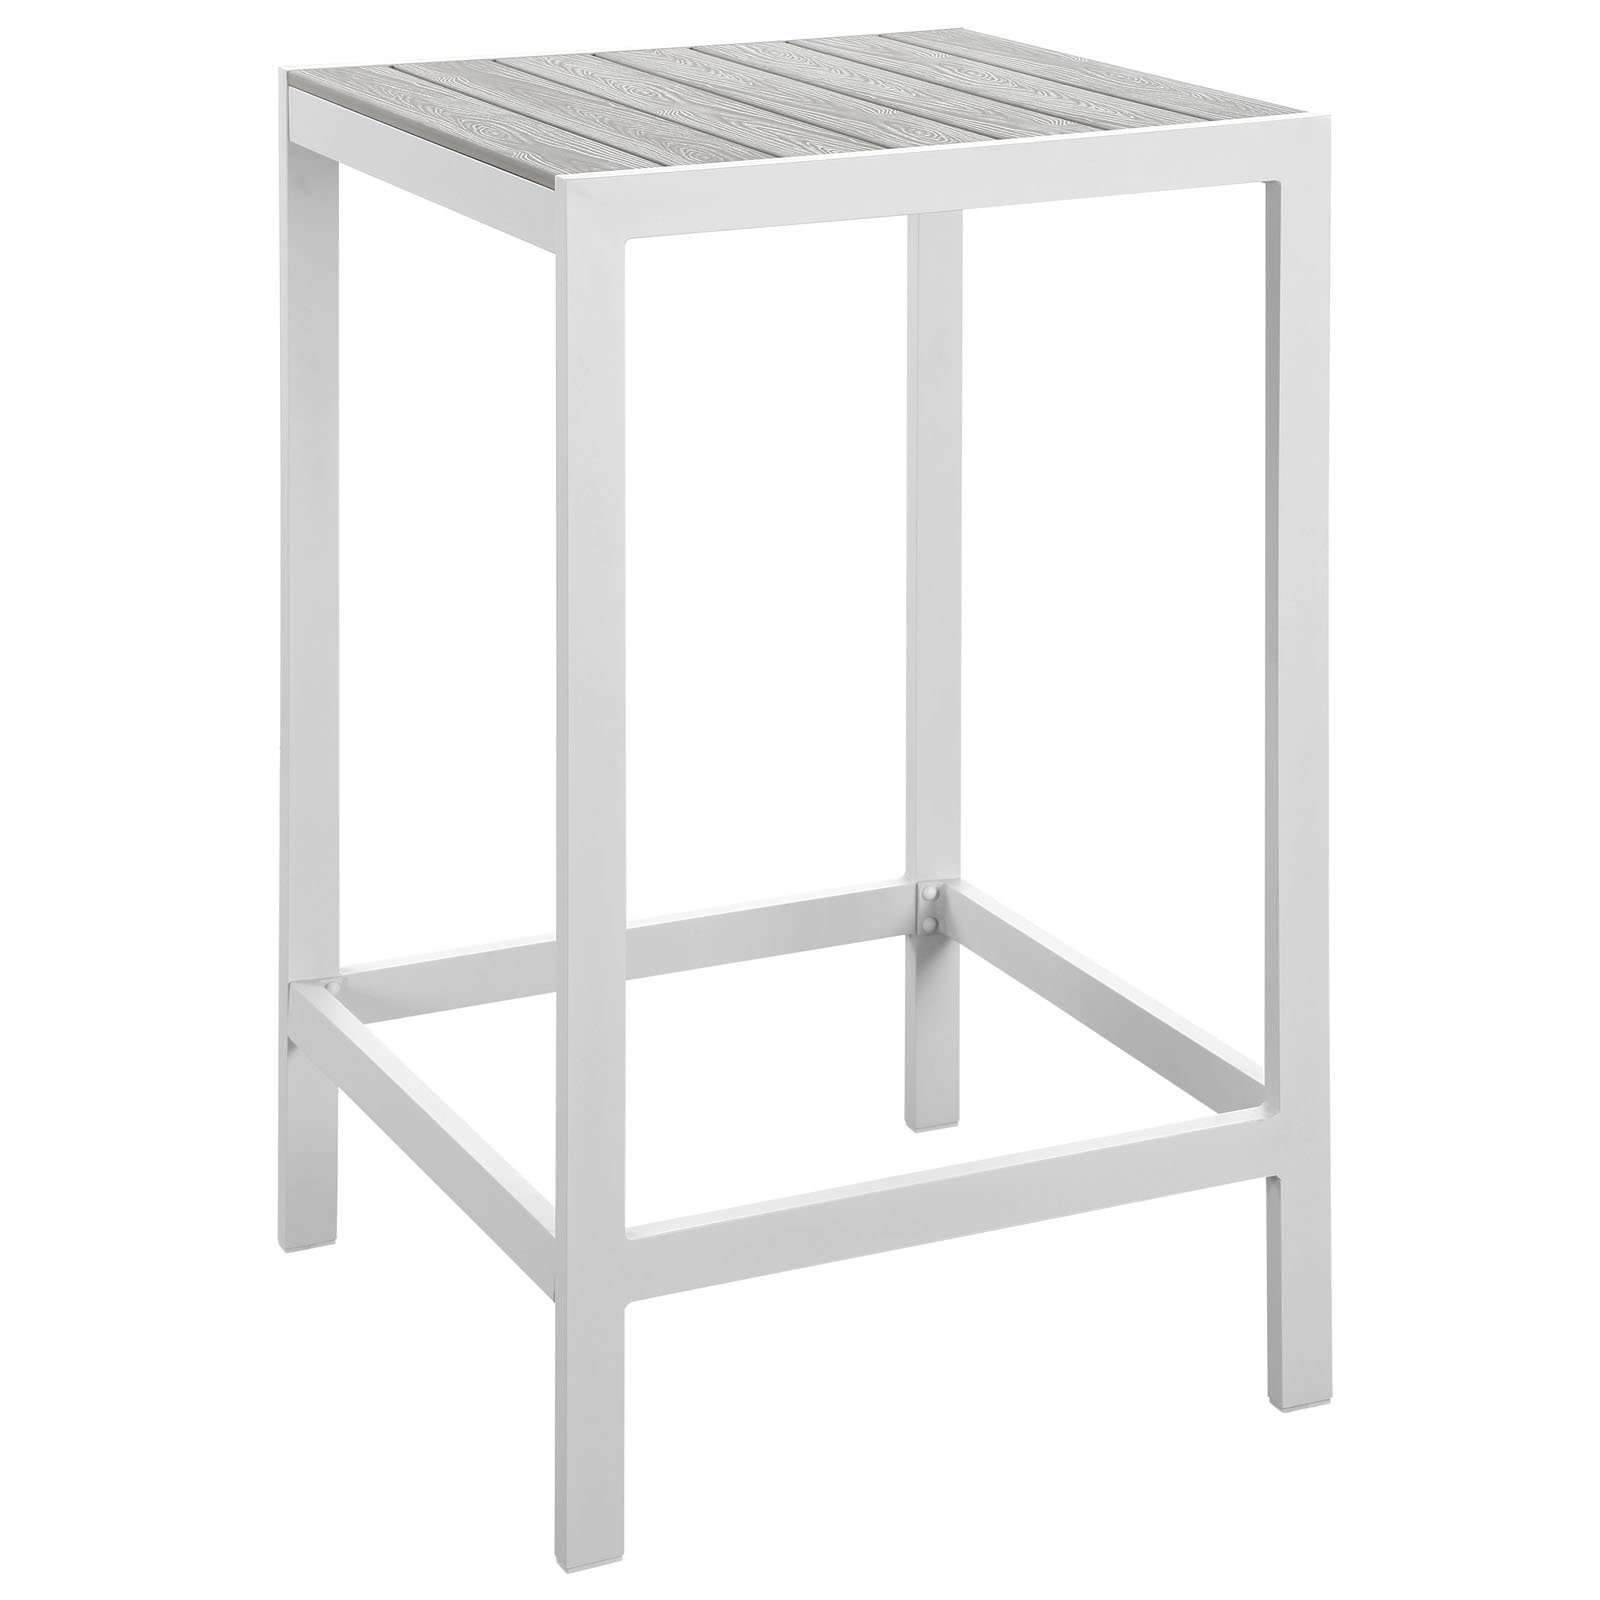 Modway Maine Aluminum Outdoor Patio Bar Table in White Light Gray by Modway